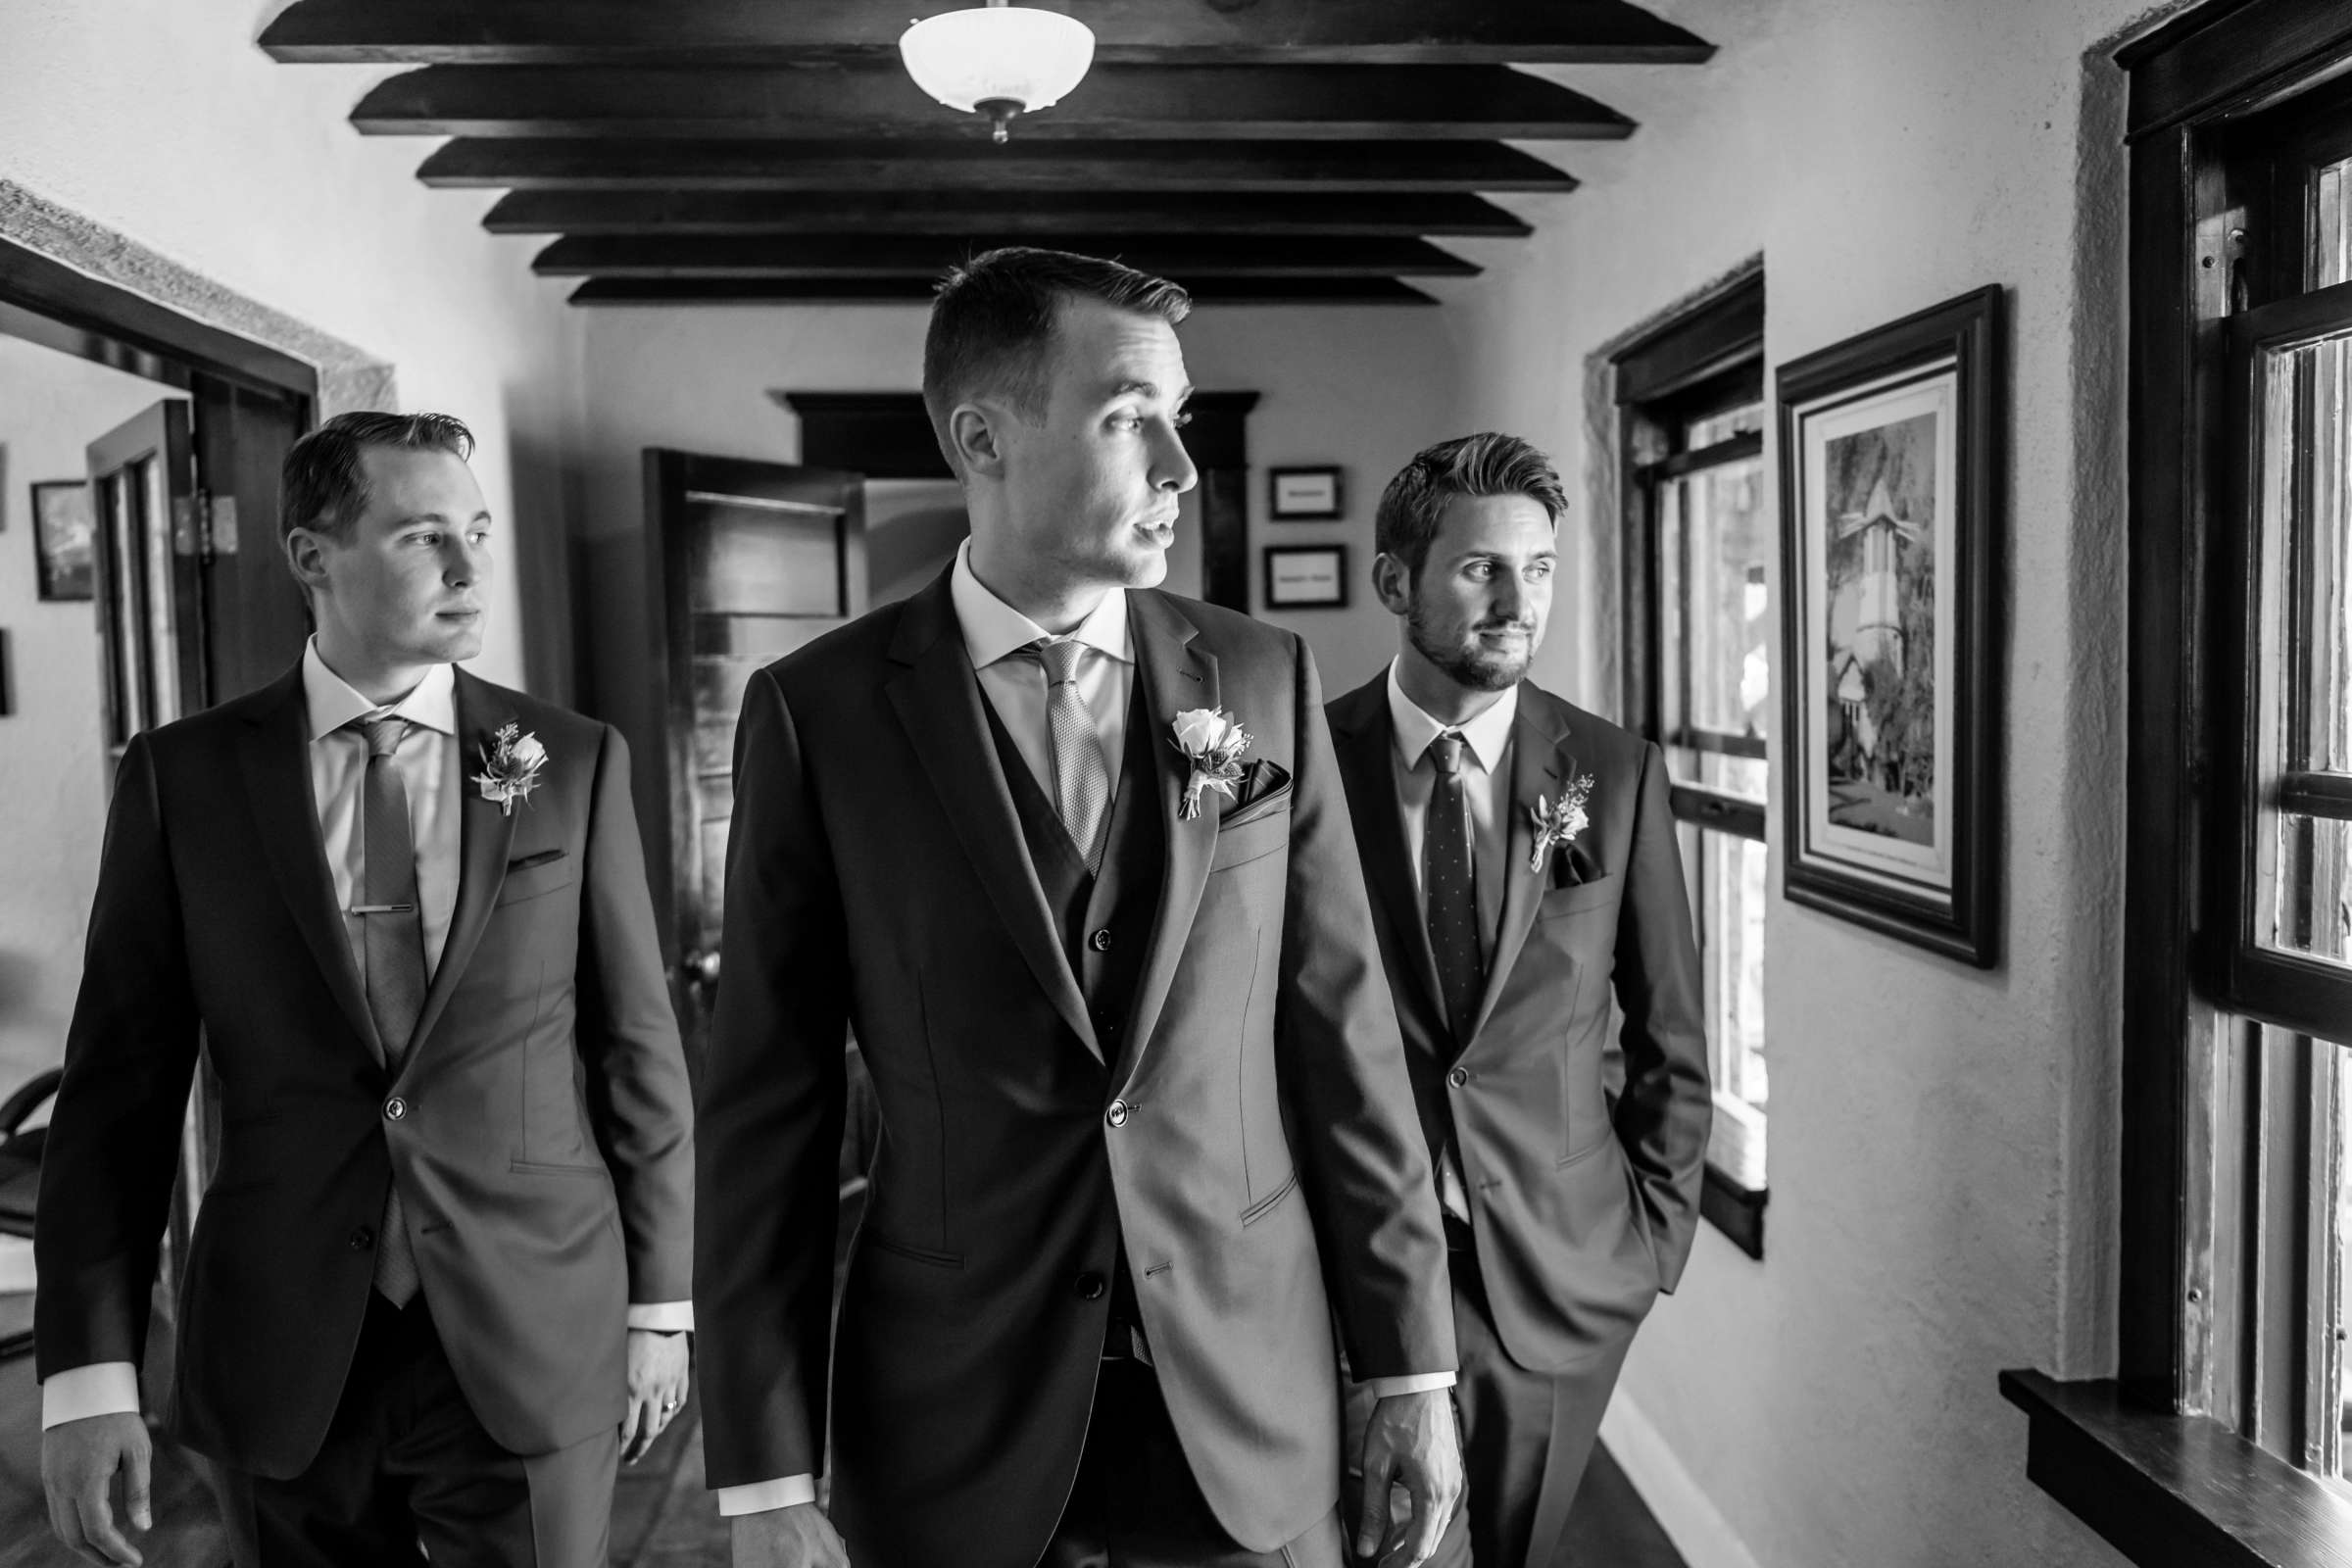 Mt Woodson Castle Wedding coordinated by I Do Weddings, Aya and Jared Wedding Photo #486925 by True Photography